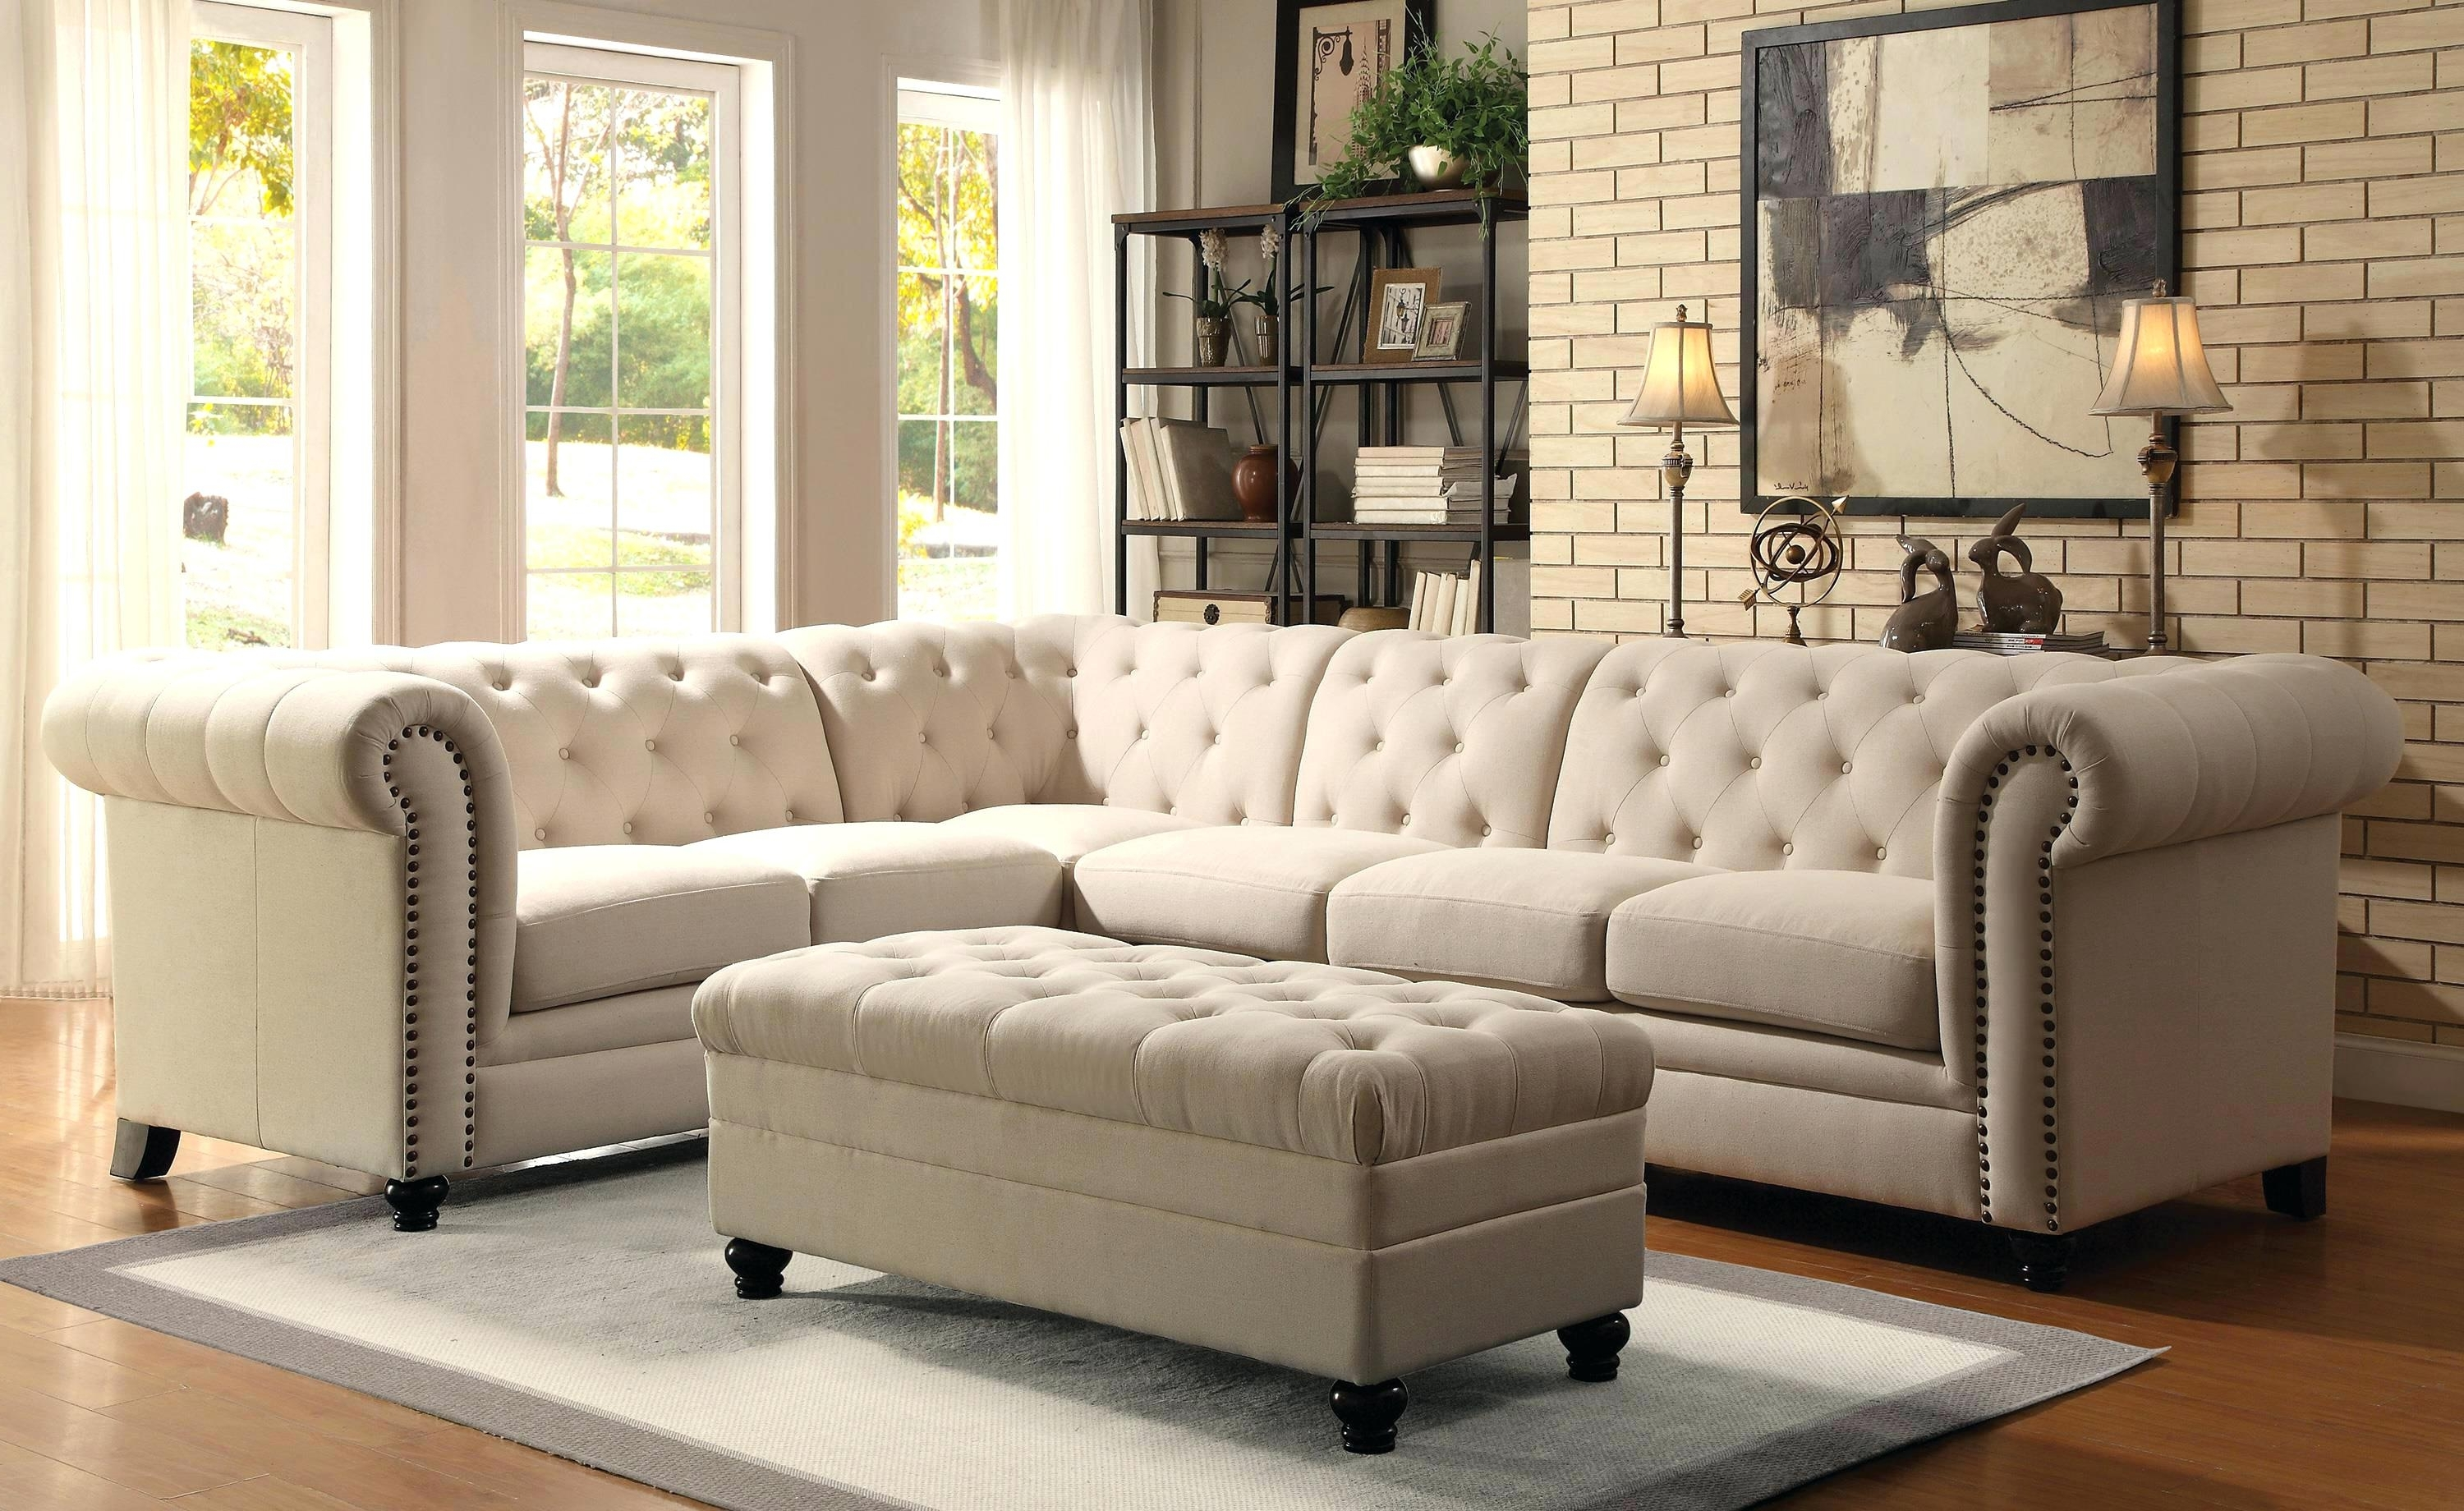 L Sectional Sofa Shad Sectiona 1810282 Slipcovers Walmart Covers With 2018 London Ontario Sectional Sofas (View 3 of 15)